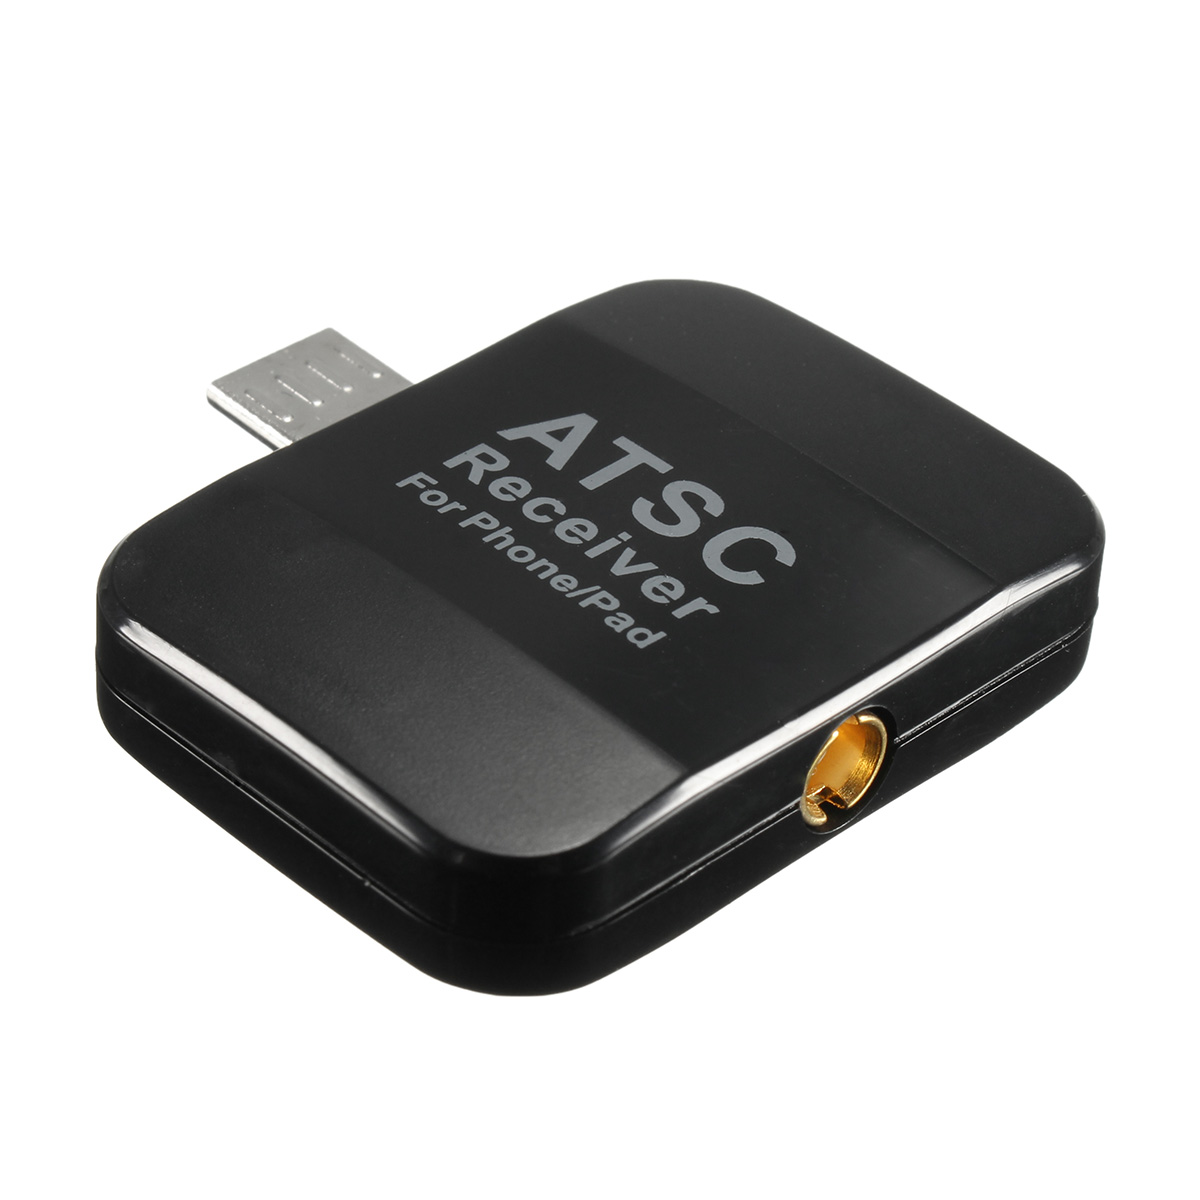 ATSC TV Tuner Digital Mobile Receiver OTG Micro USB Stick for Android Pad Phone